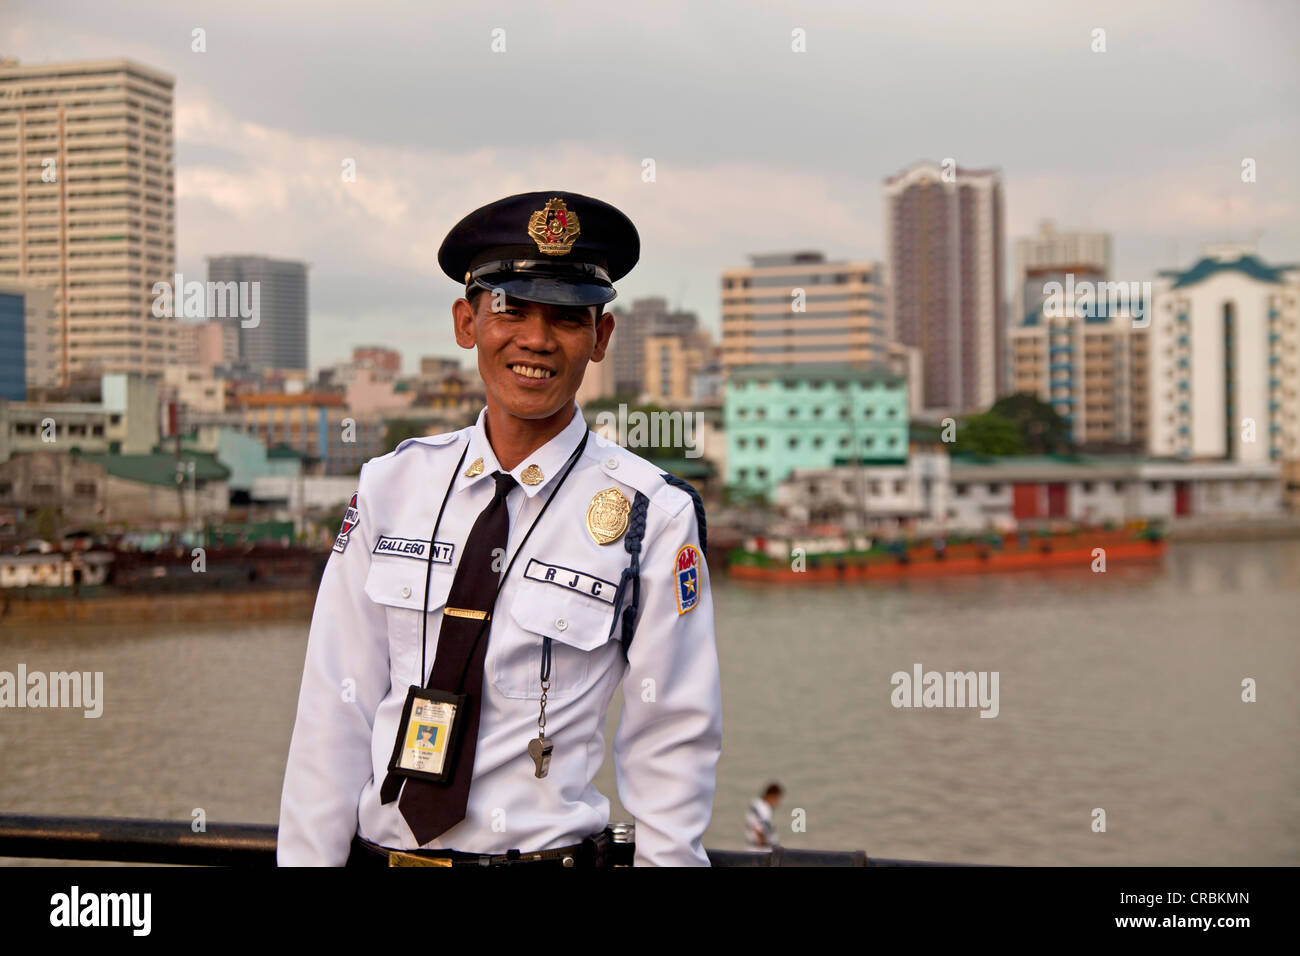 Uniformed security guard at Fort Santiago on the Pasig river, Manila, Philippines, Asia - Stock Image